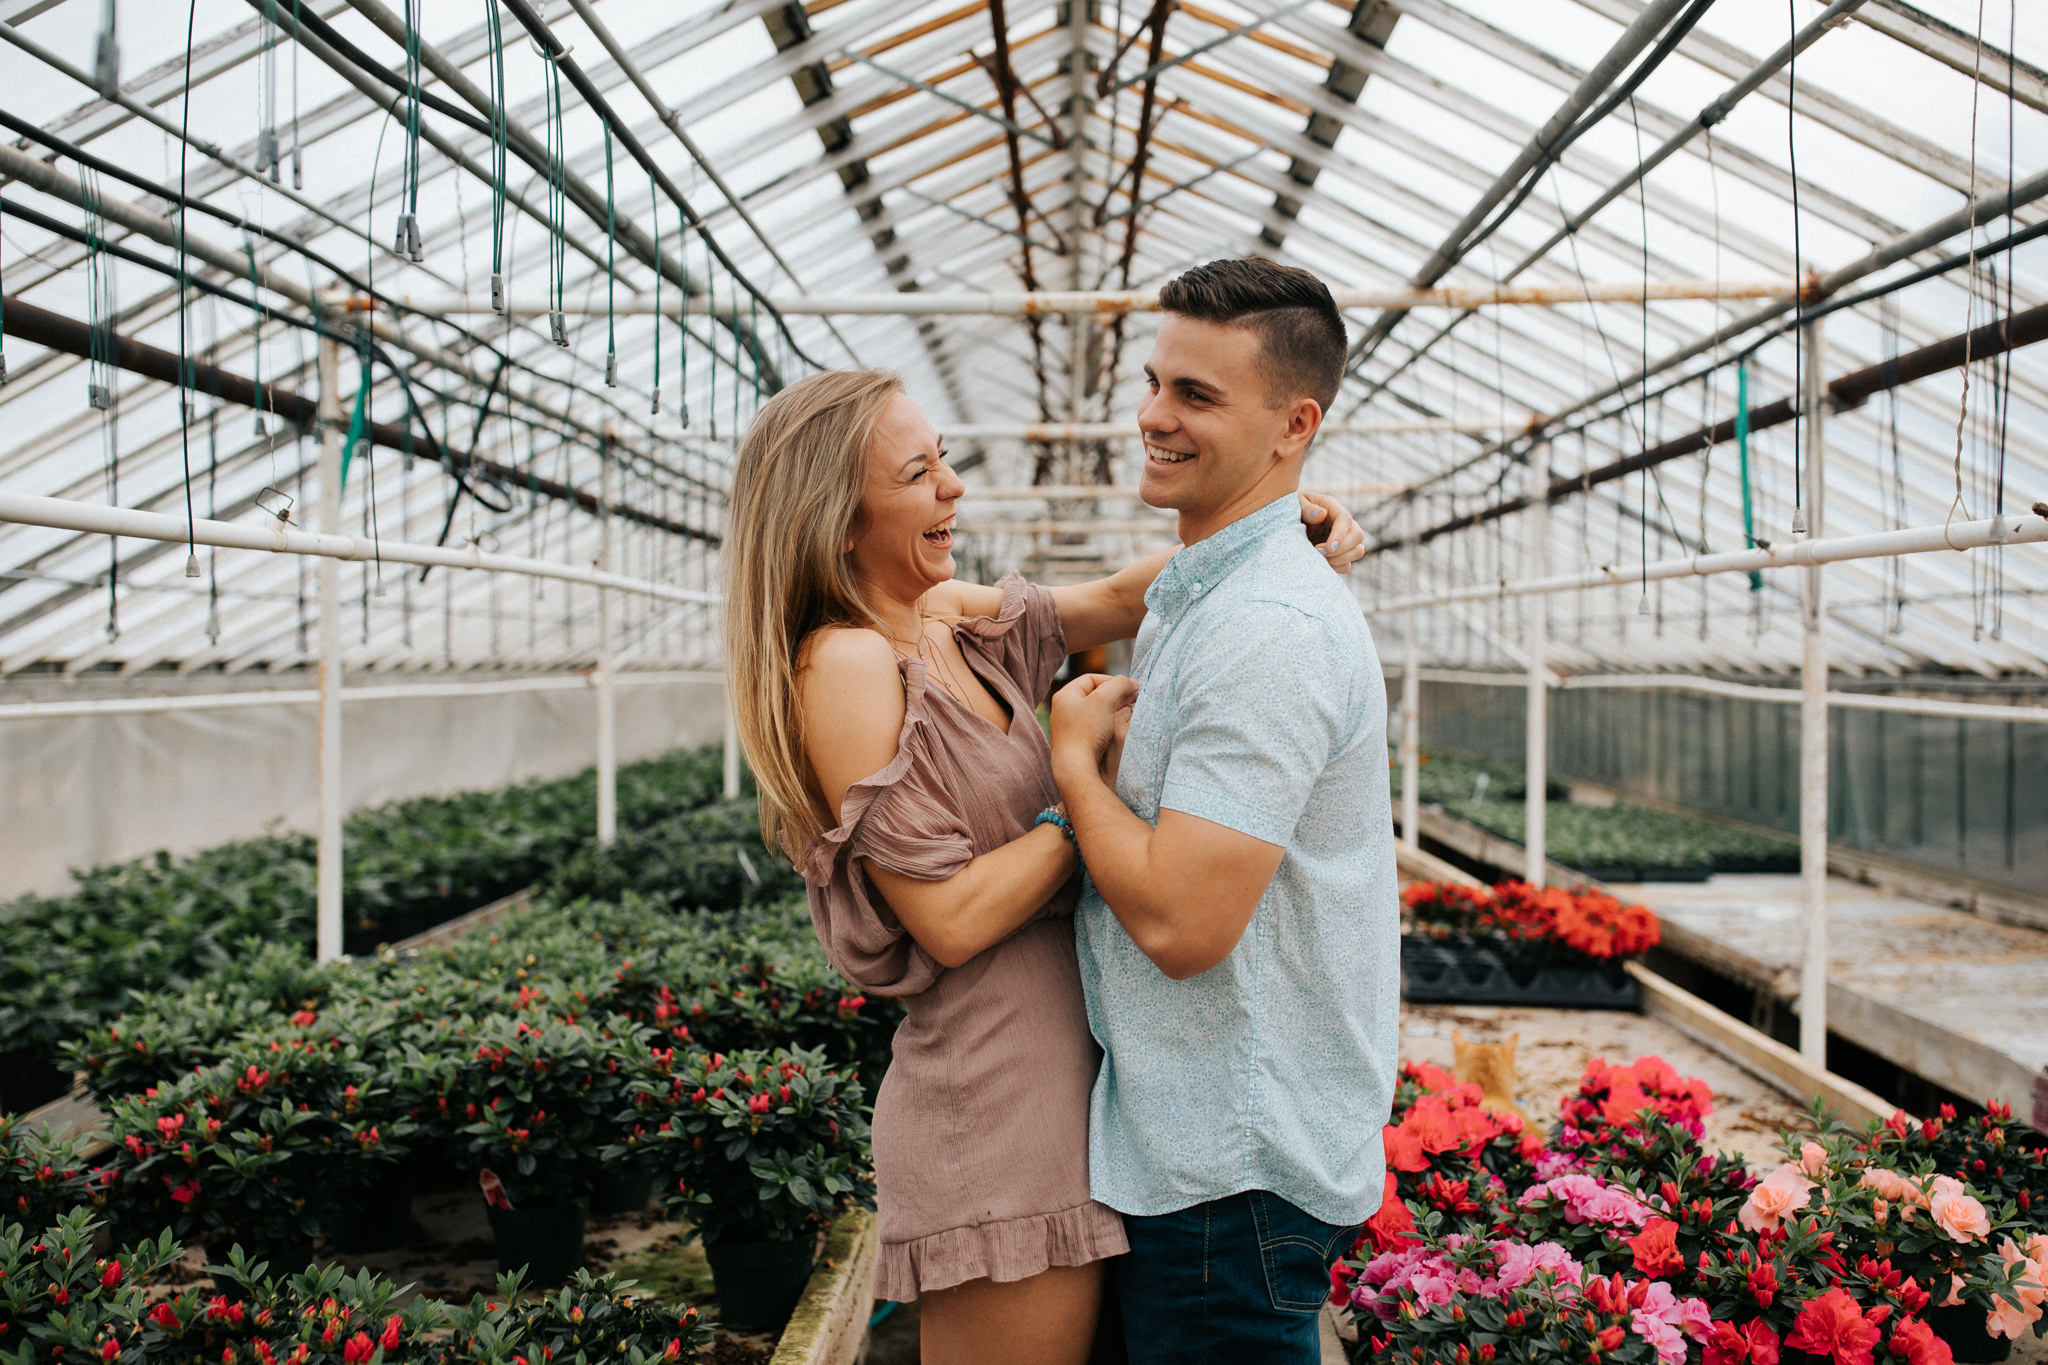 memphis-engagement-photographer-thewarmtharoundyou-greenhouse-engagement-pictures (111 of 118).jpg